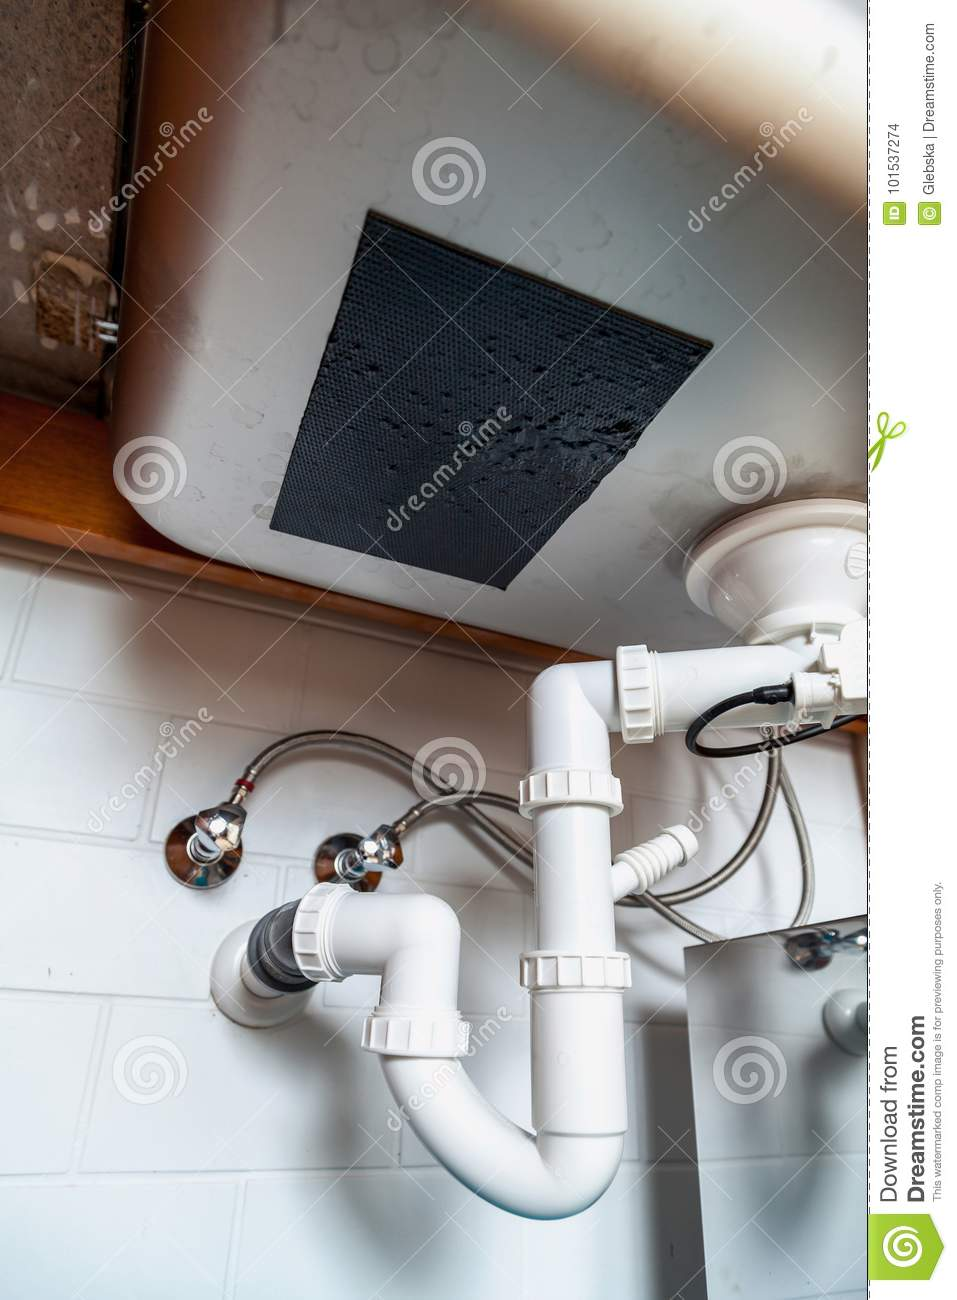 Drainage system - plastic or metal